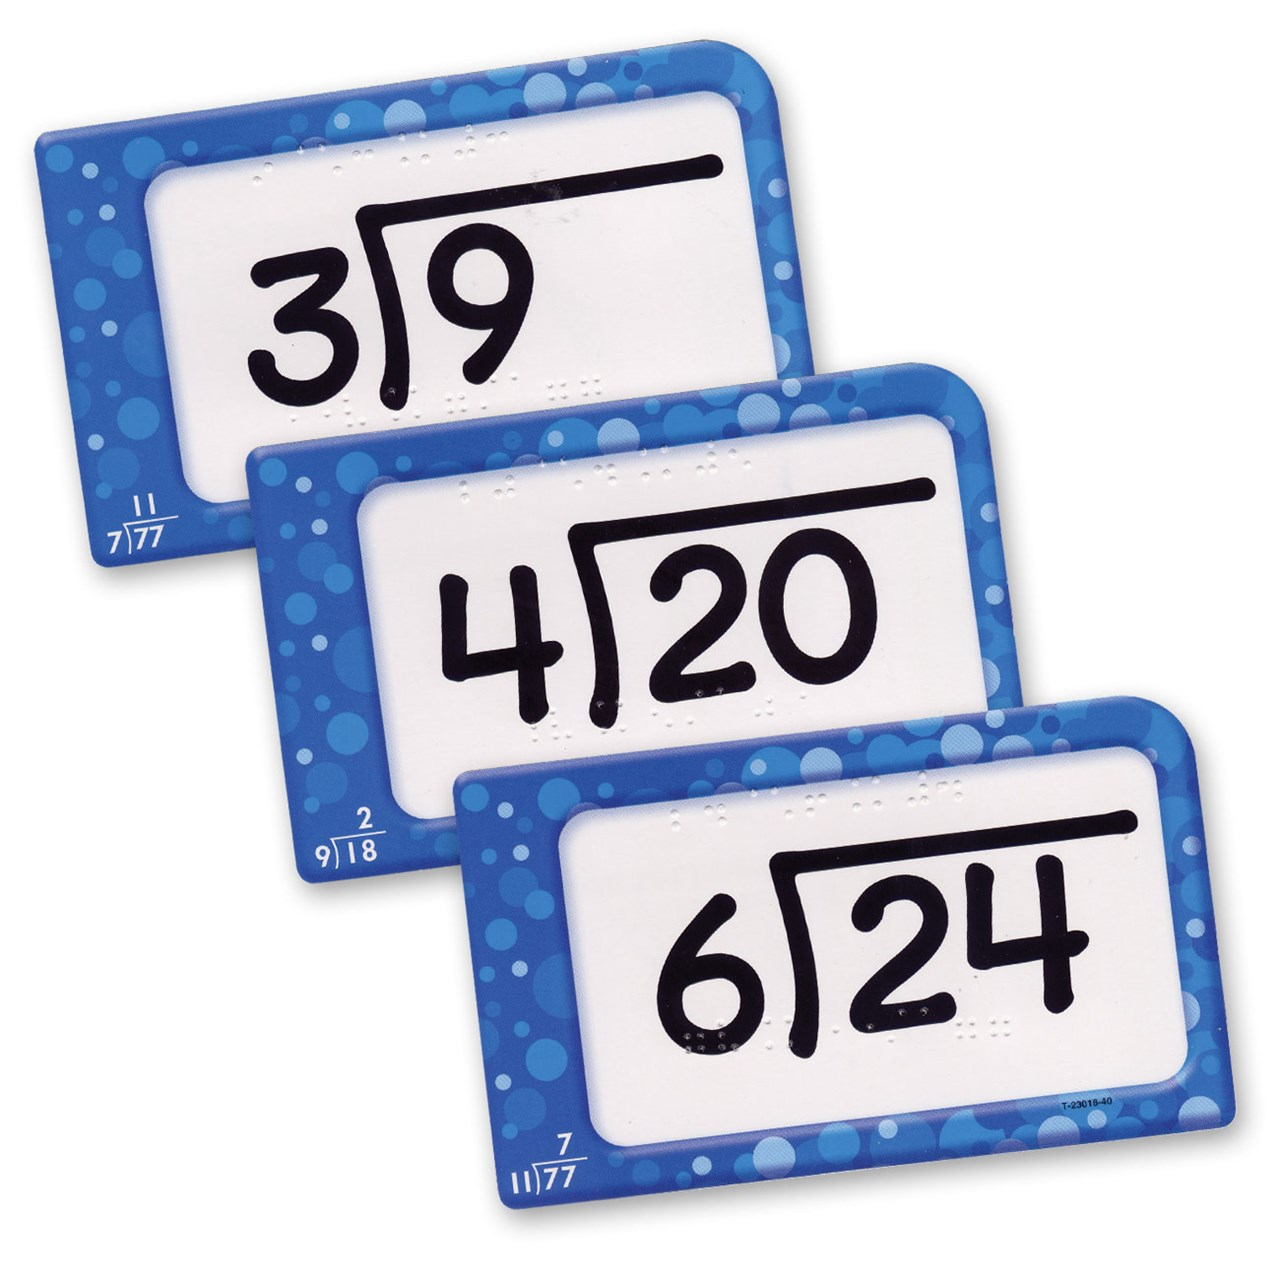 Division Pocket Flash Cards with Braille